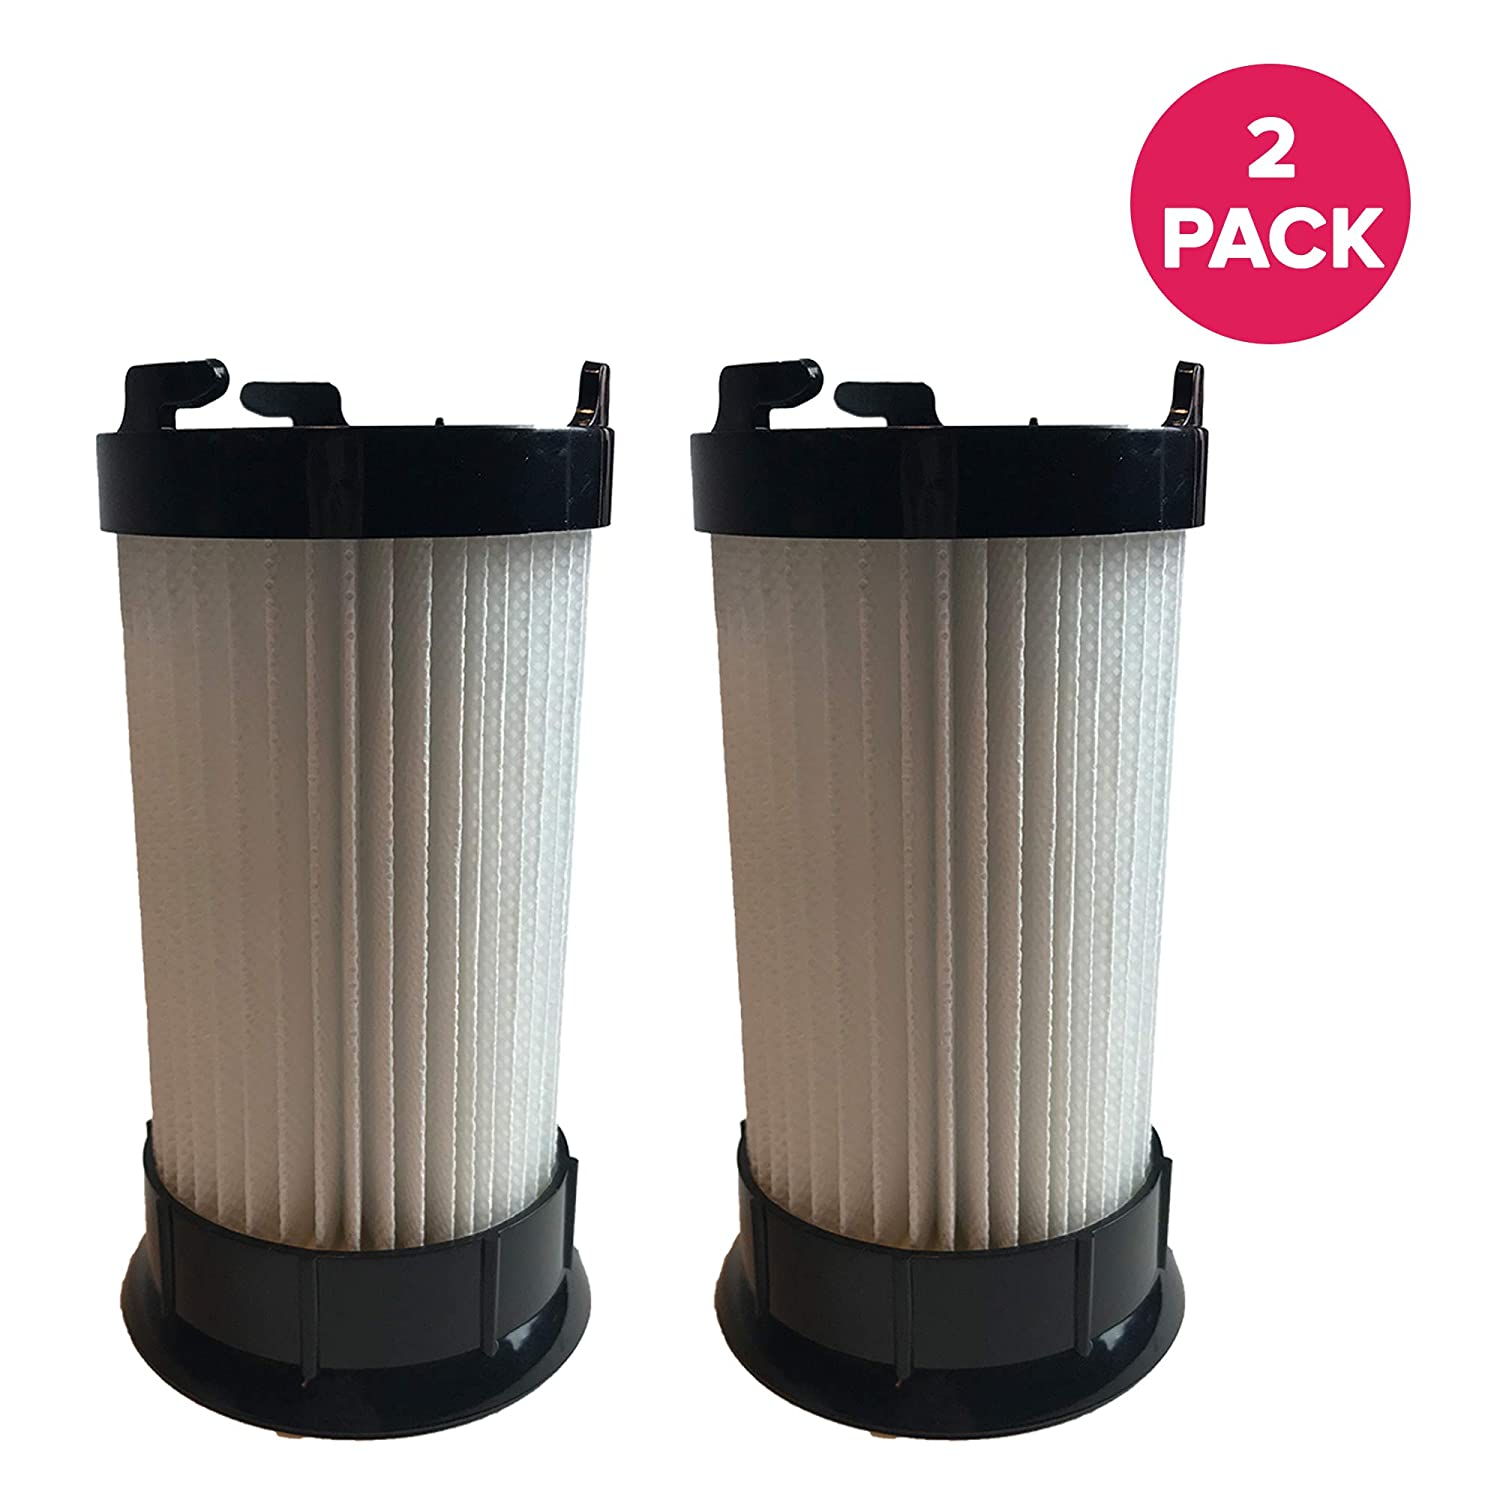 Think Crucial 2 Replacement for Eureka DCF-1, DCF-4 & DCF-18 Filter Fits 4700 & 5500 Series, Compatible With Part # 62132, 63073, 61770, 3690 & 28608-1